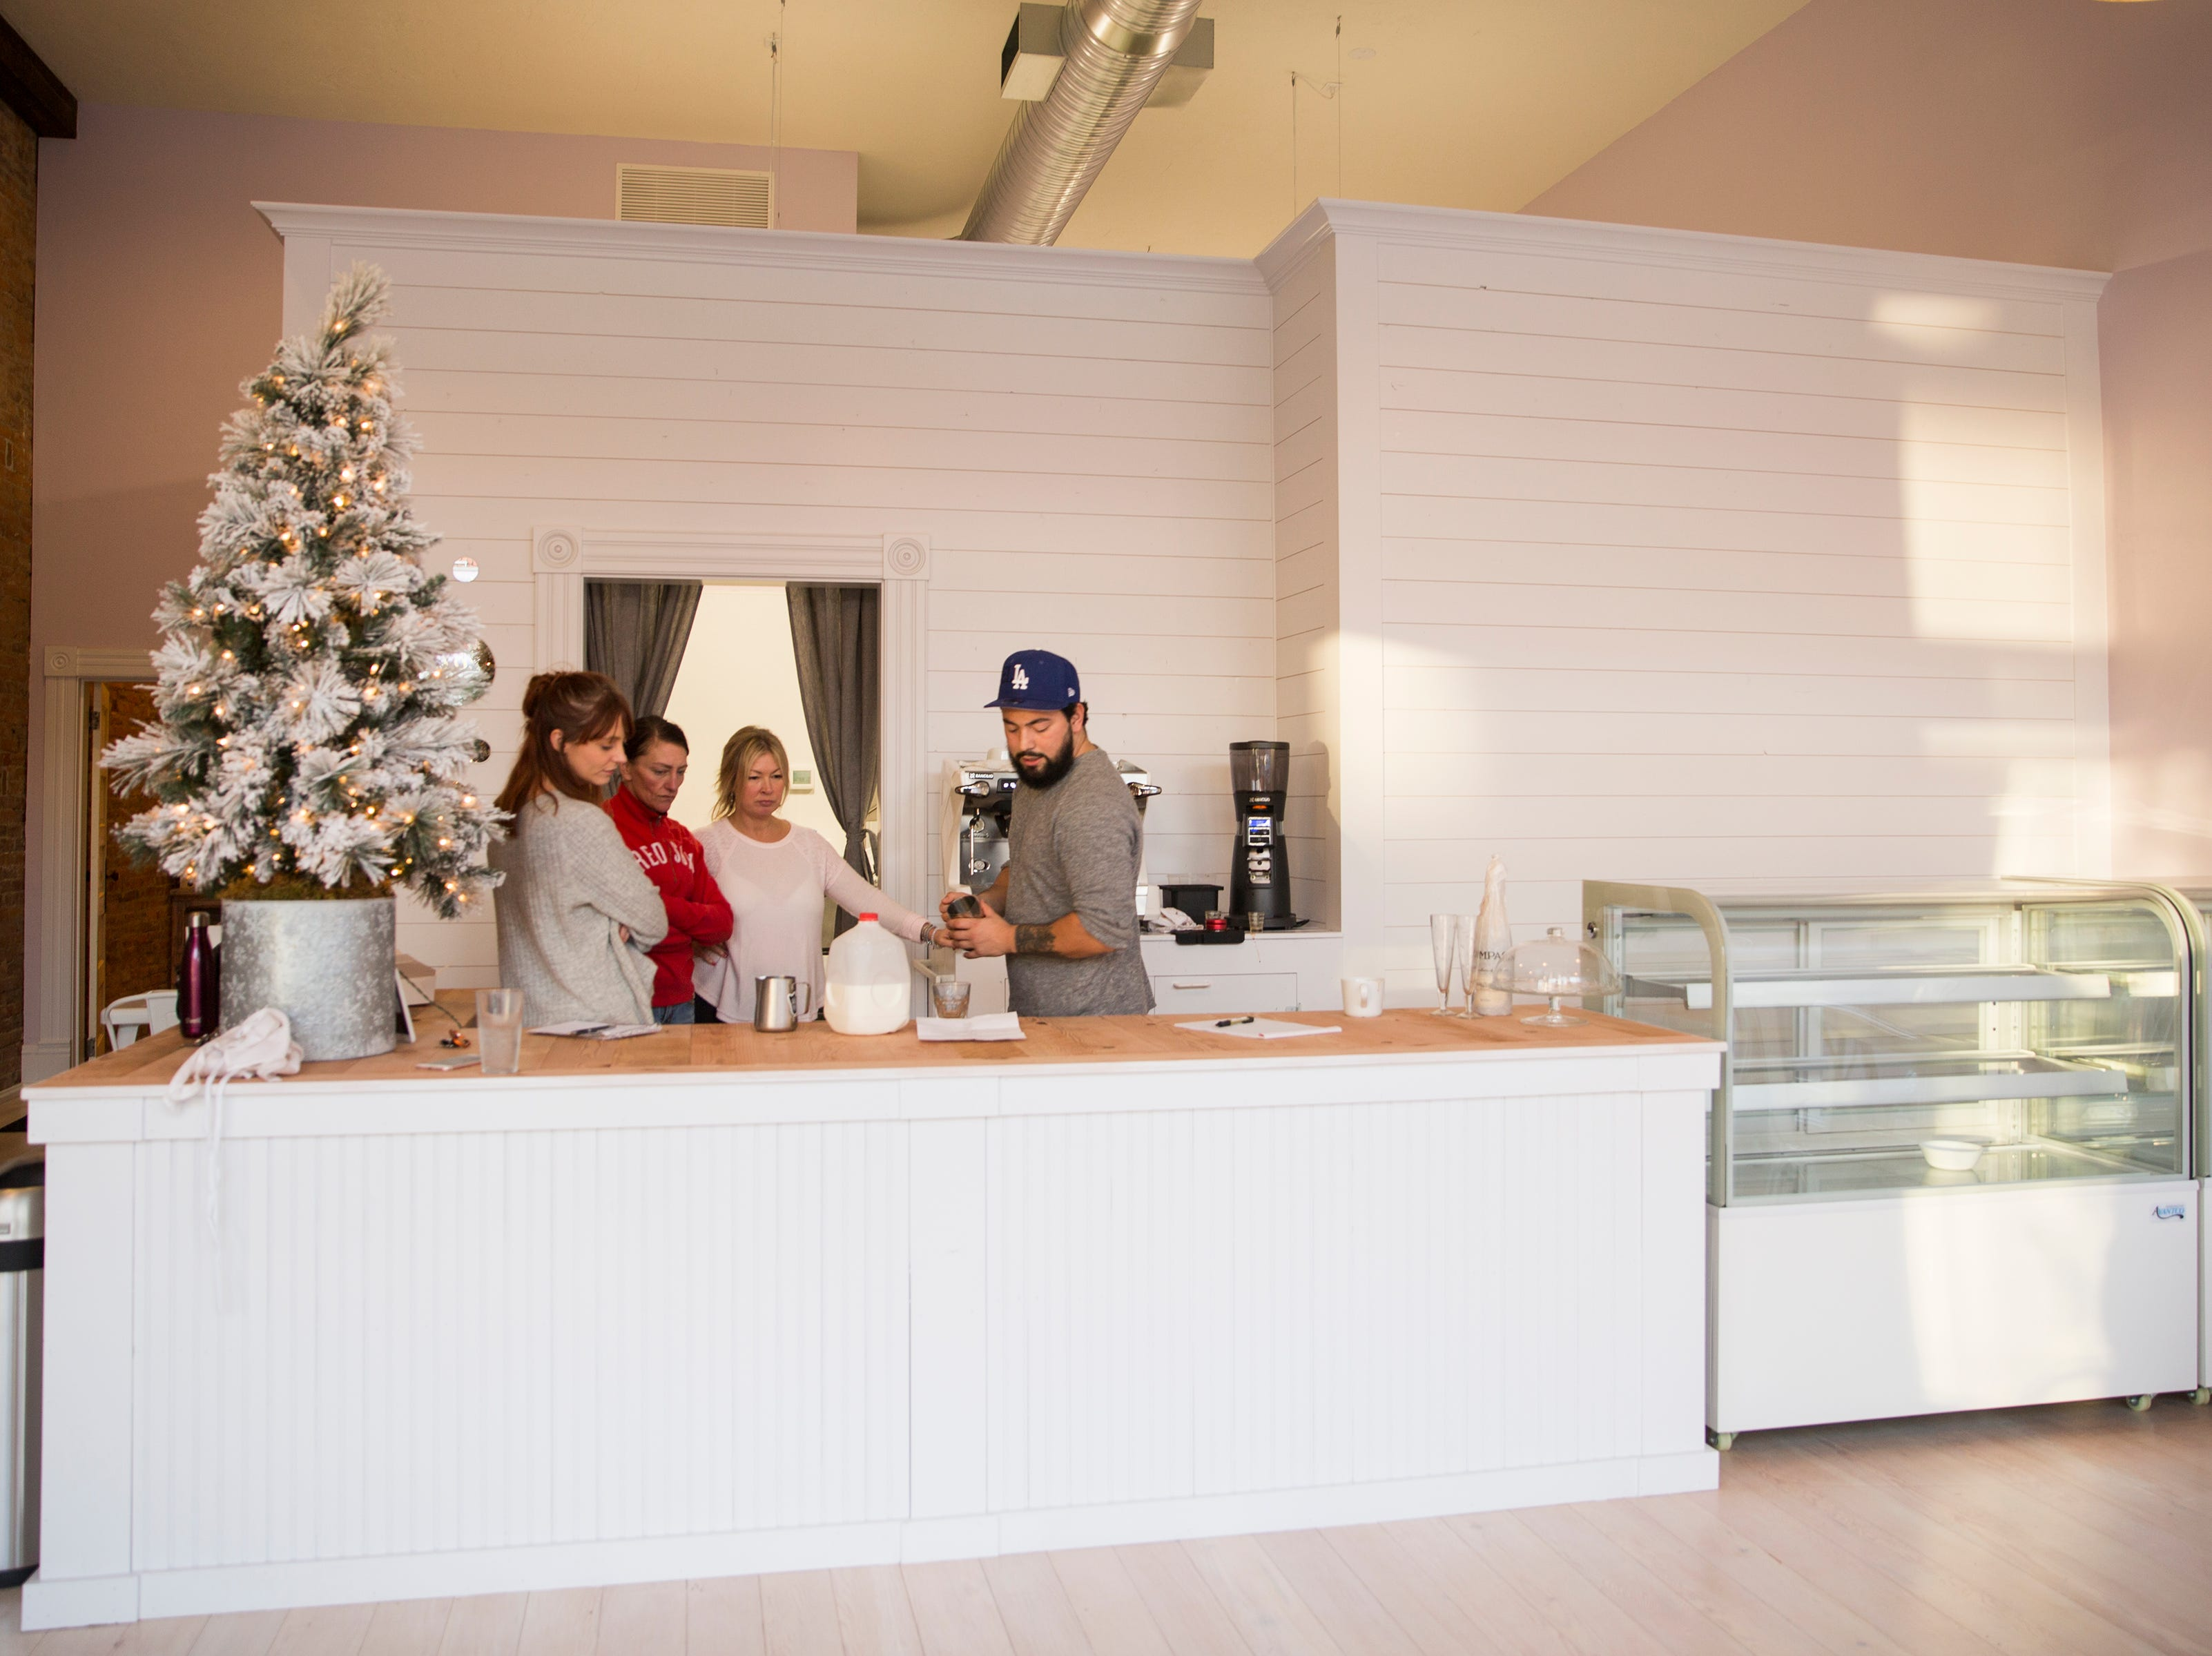 Jubilee Champagne & Dessert Bar in Independence on Tuesday, Dec. 19, 2018. The bar will serve a variety of coffee drinks, Champagne and beer along with pastries.